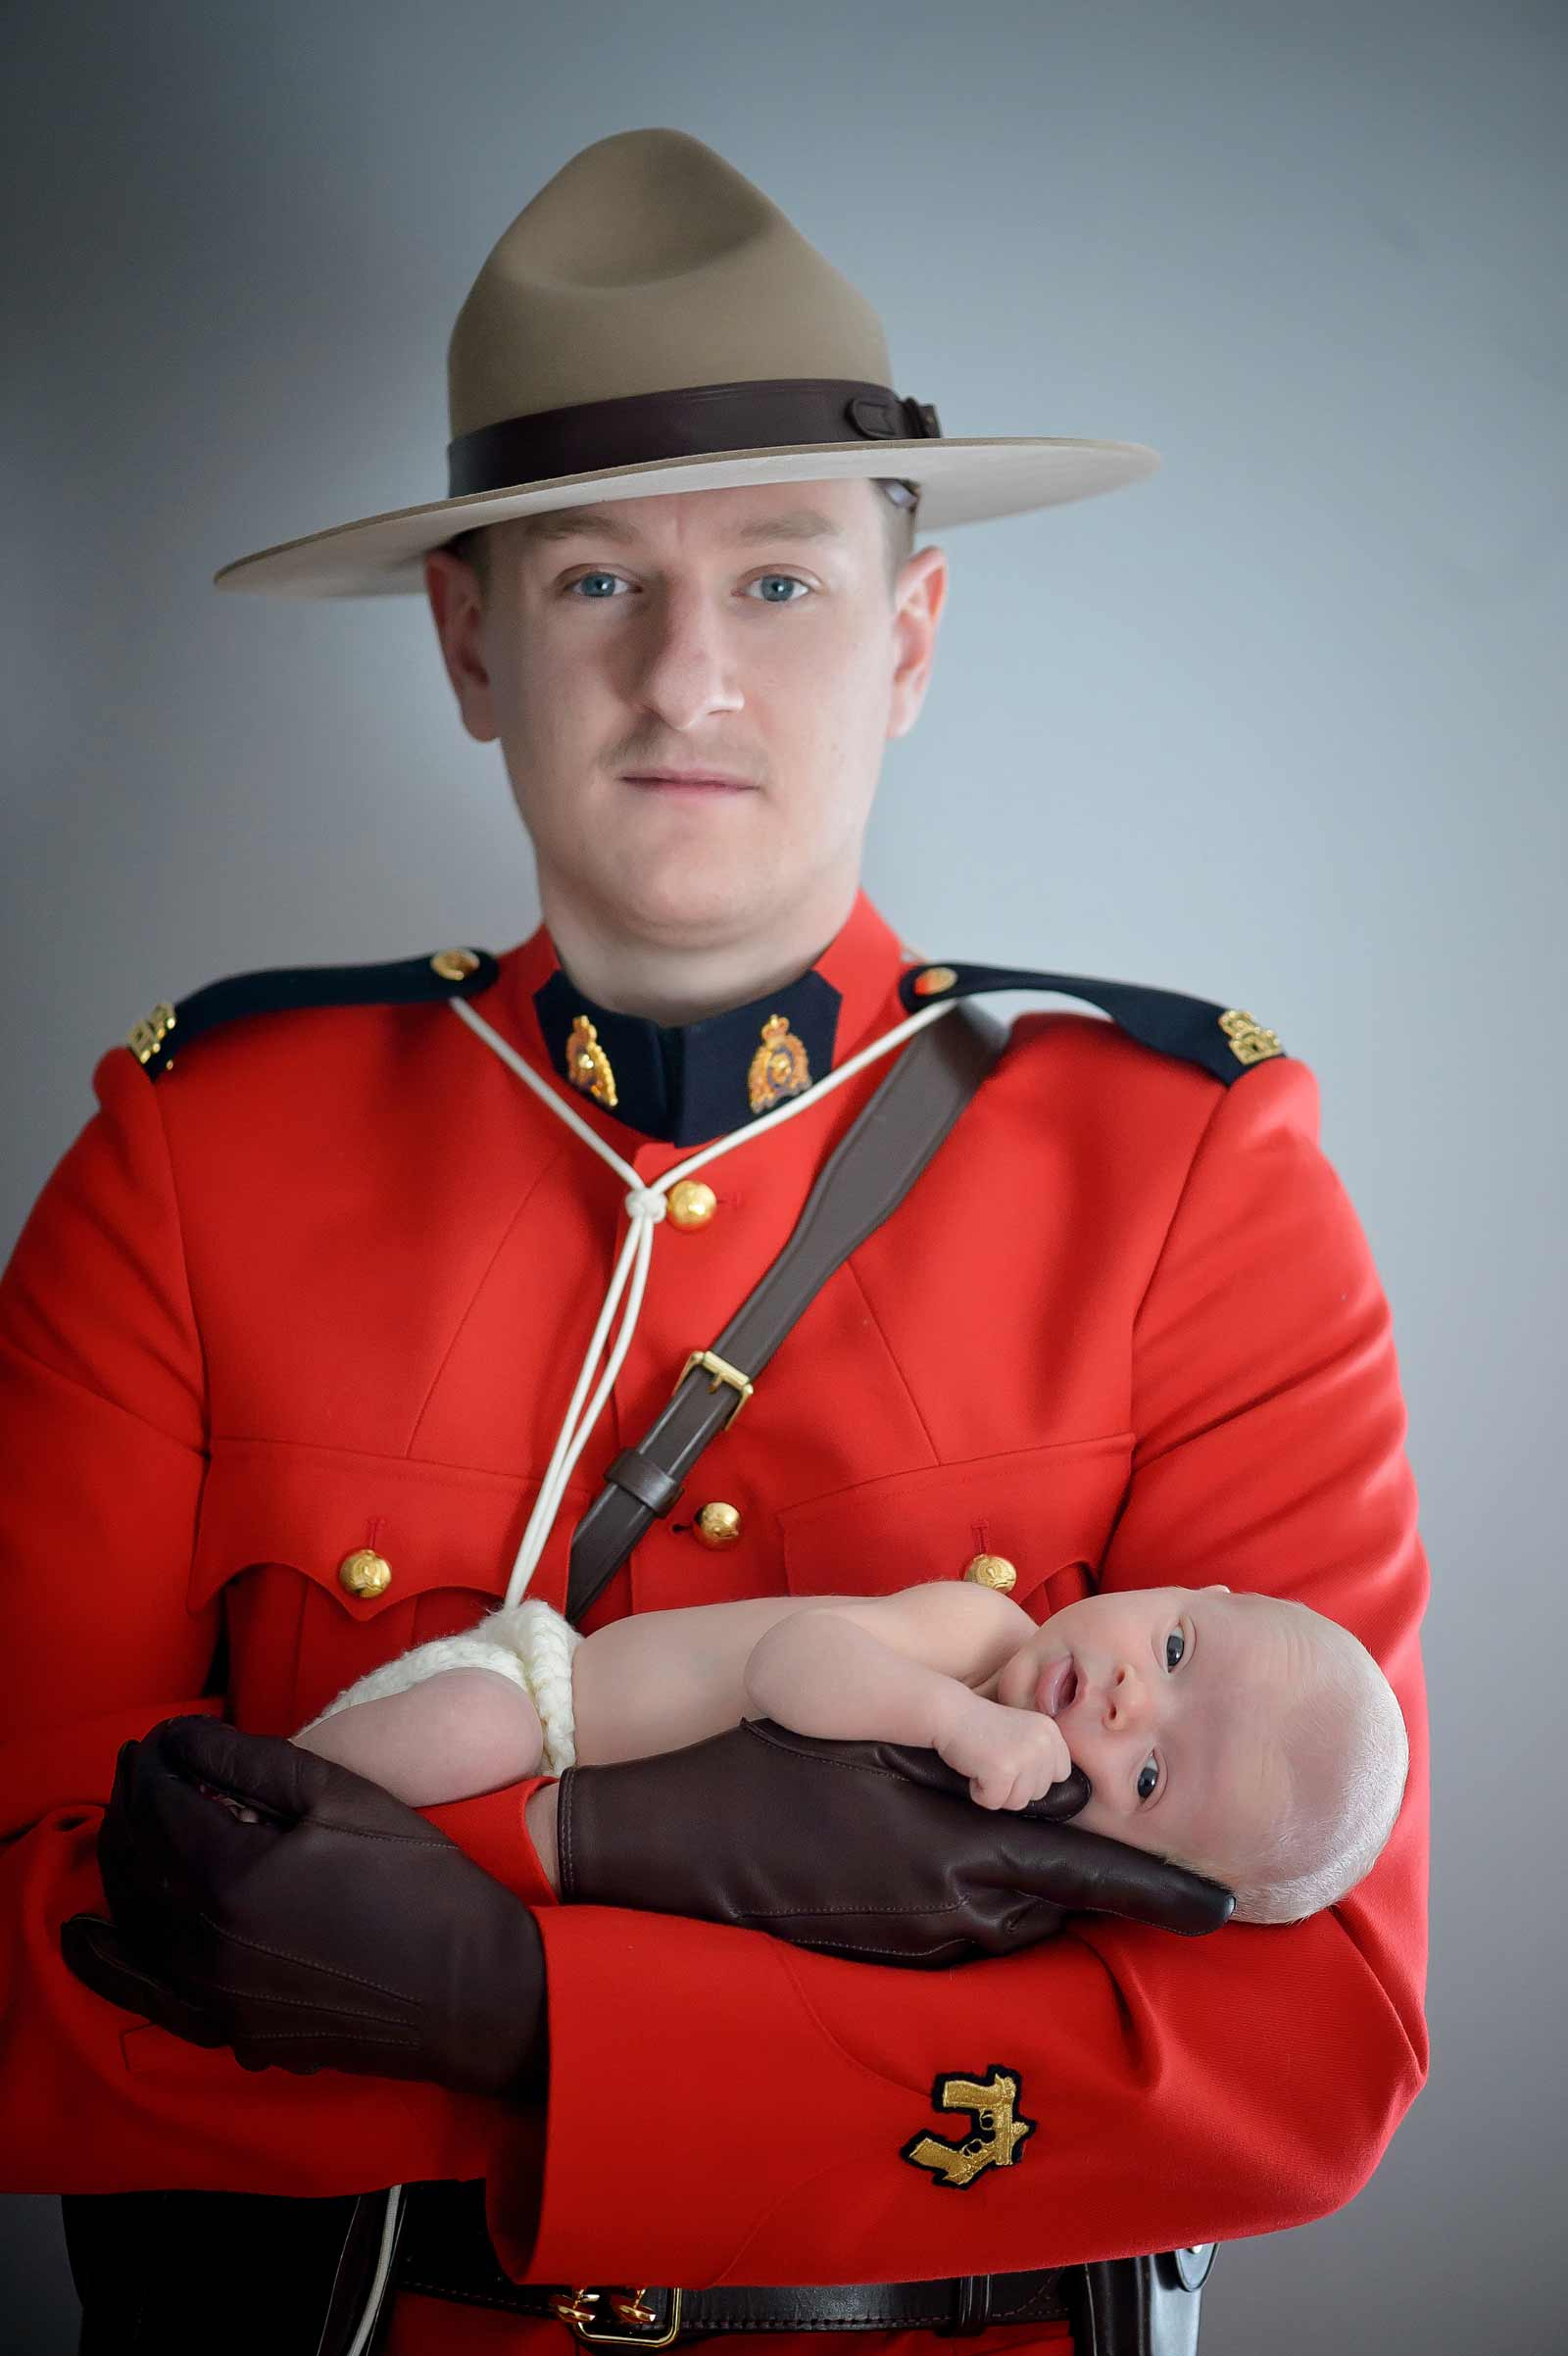 RCMP Father holding his newborn son in uniform